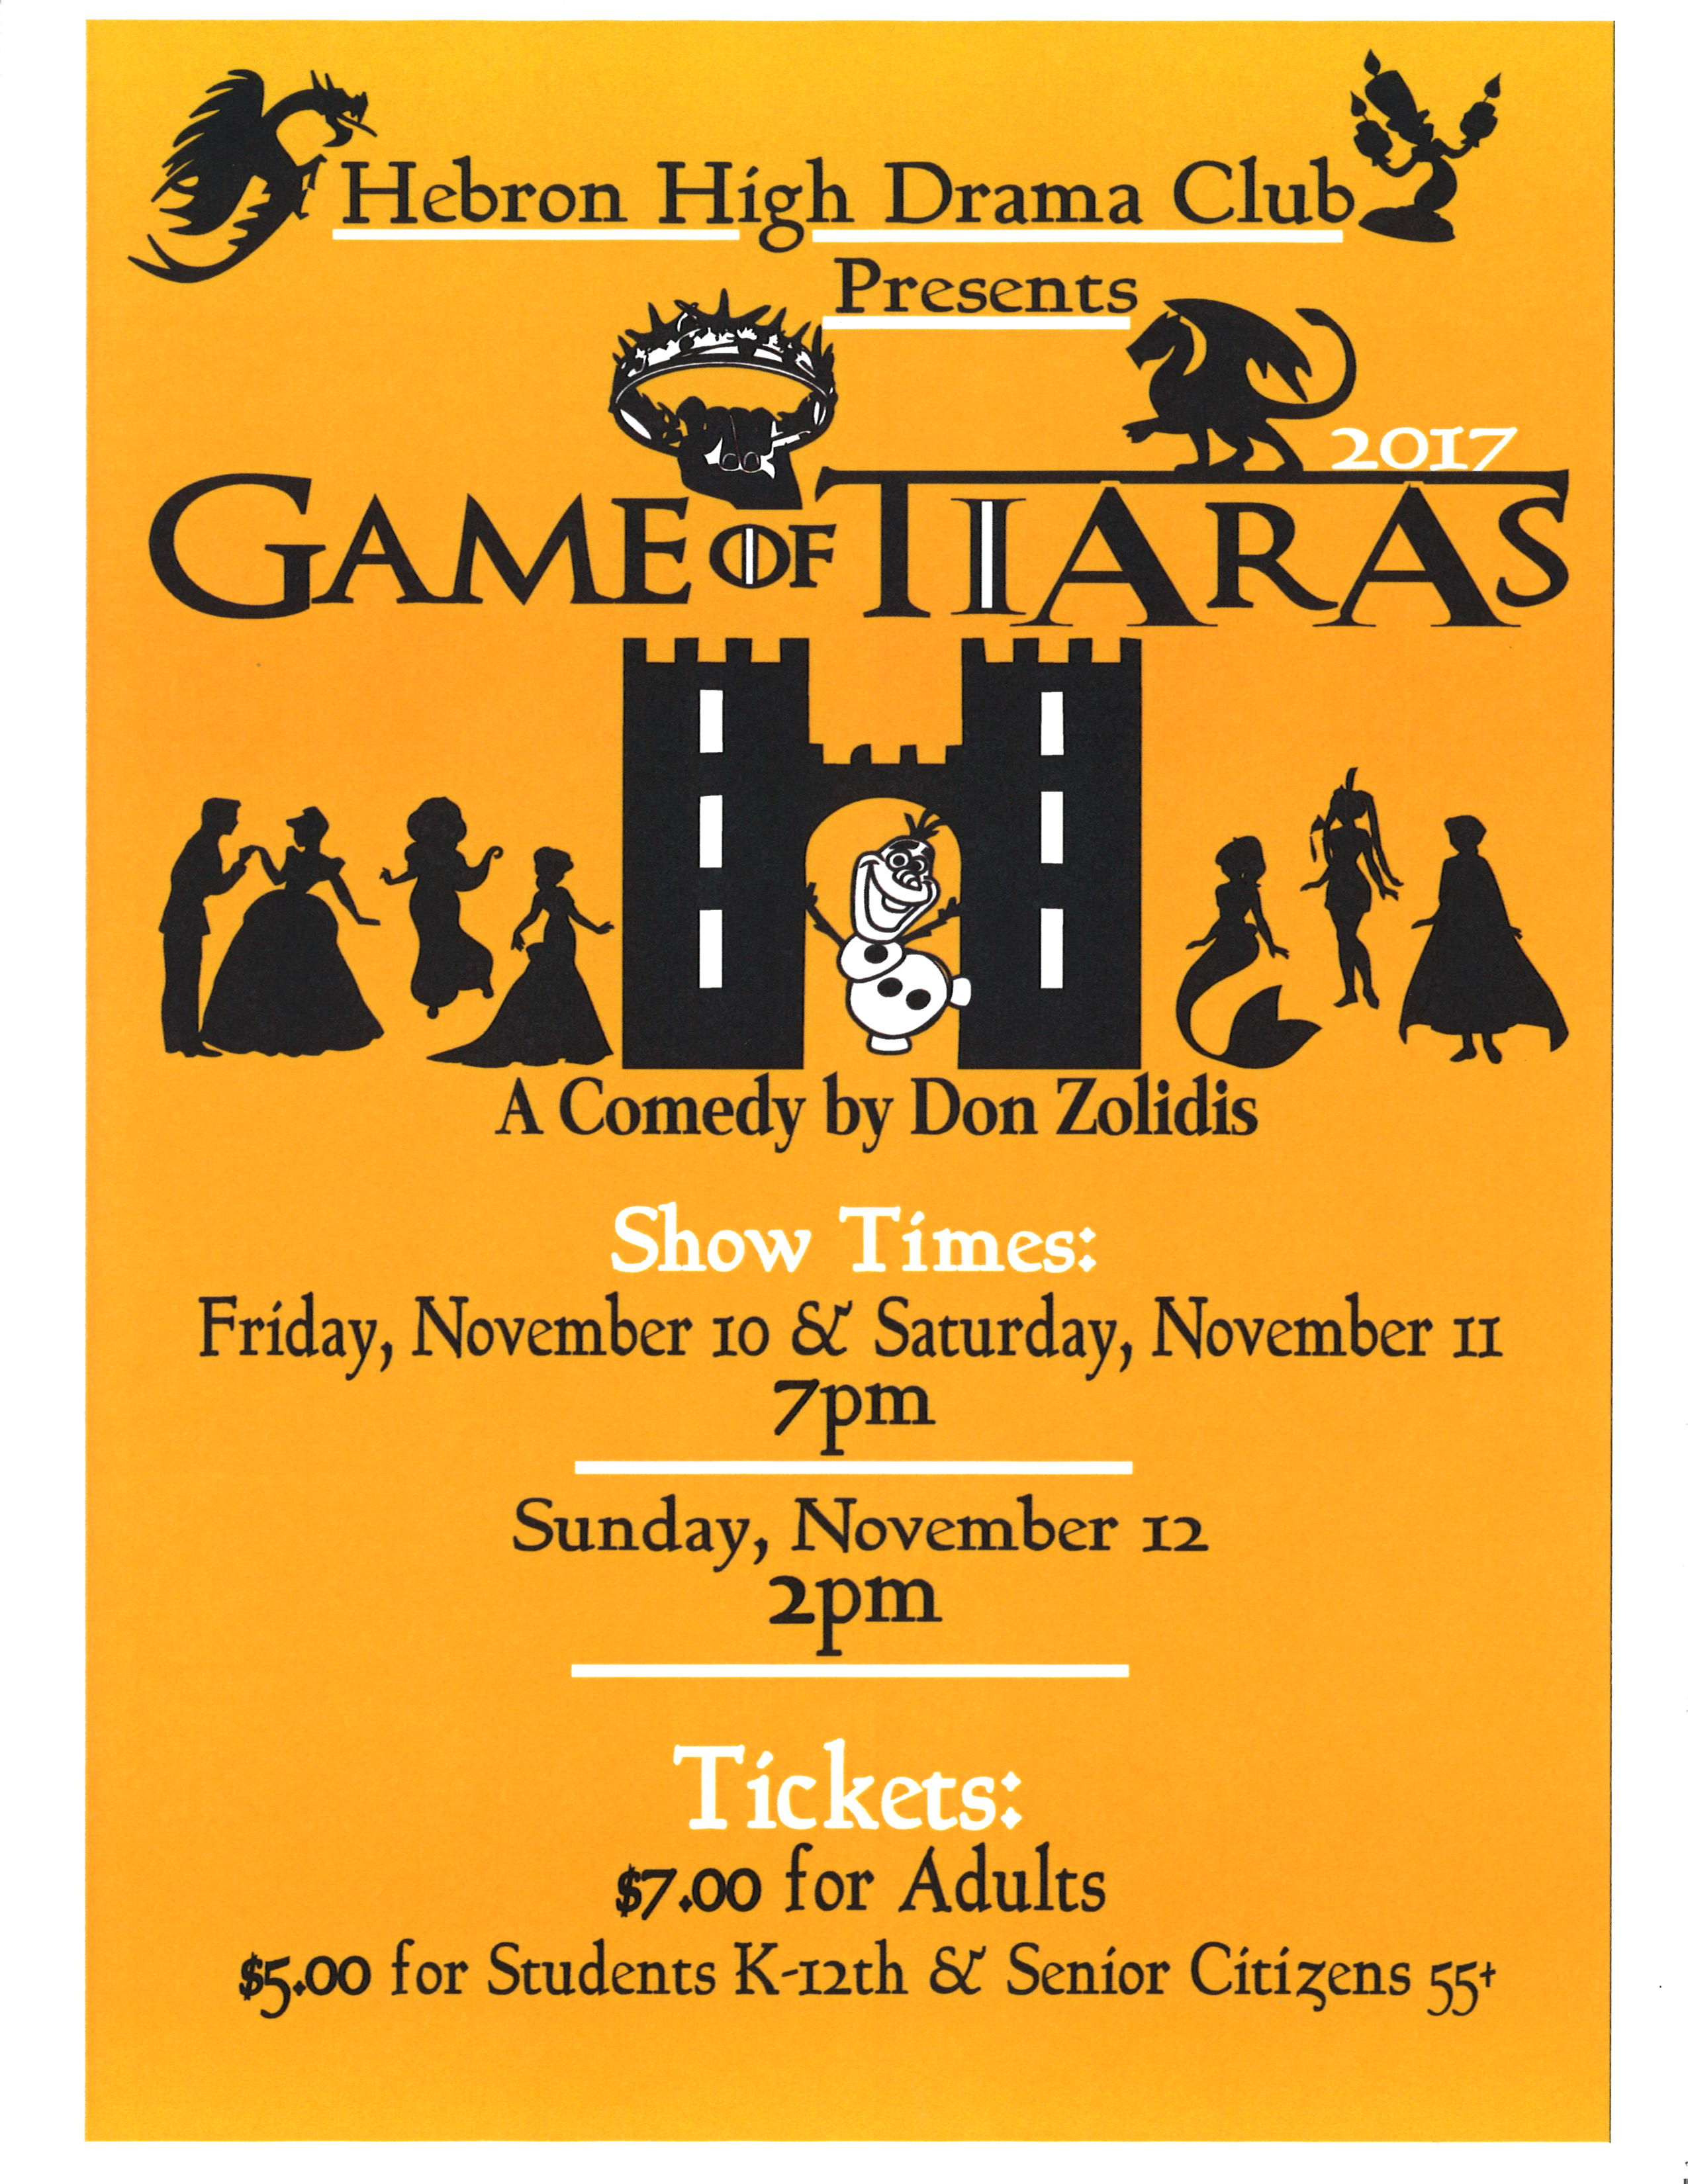 Game of Tiaras Flyer